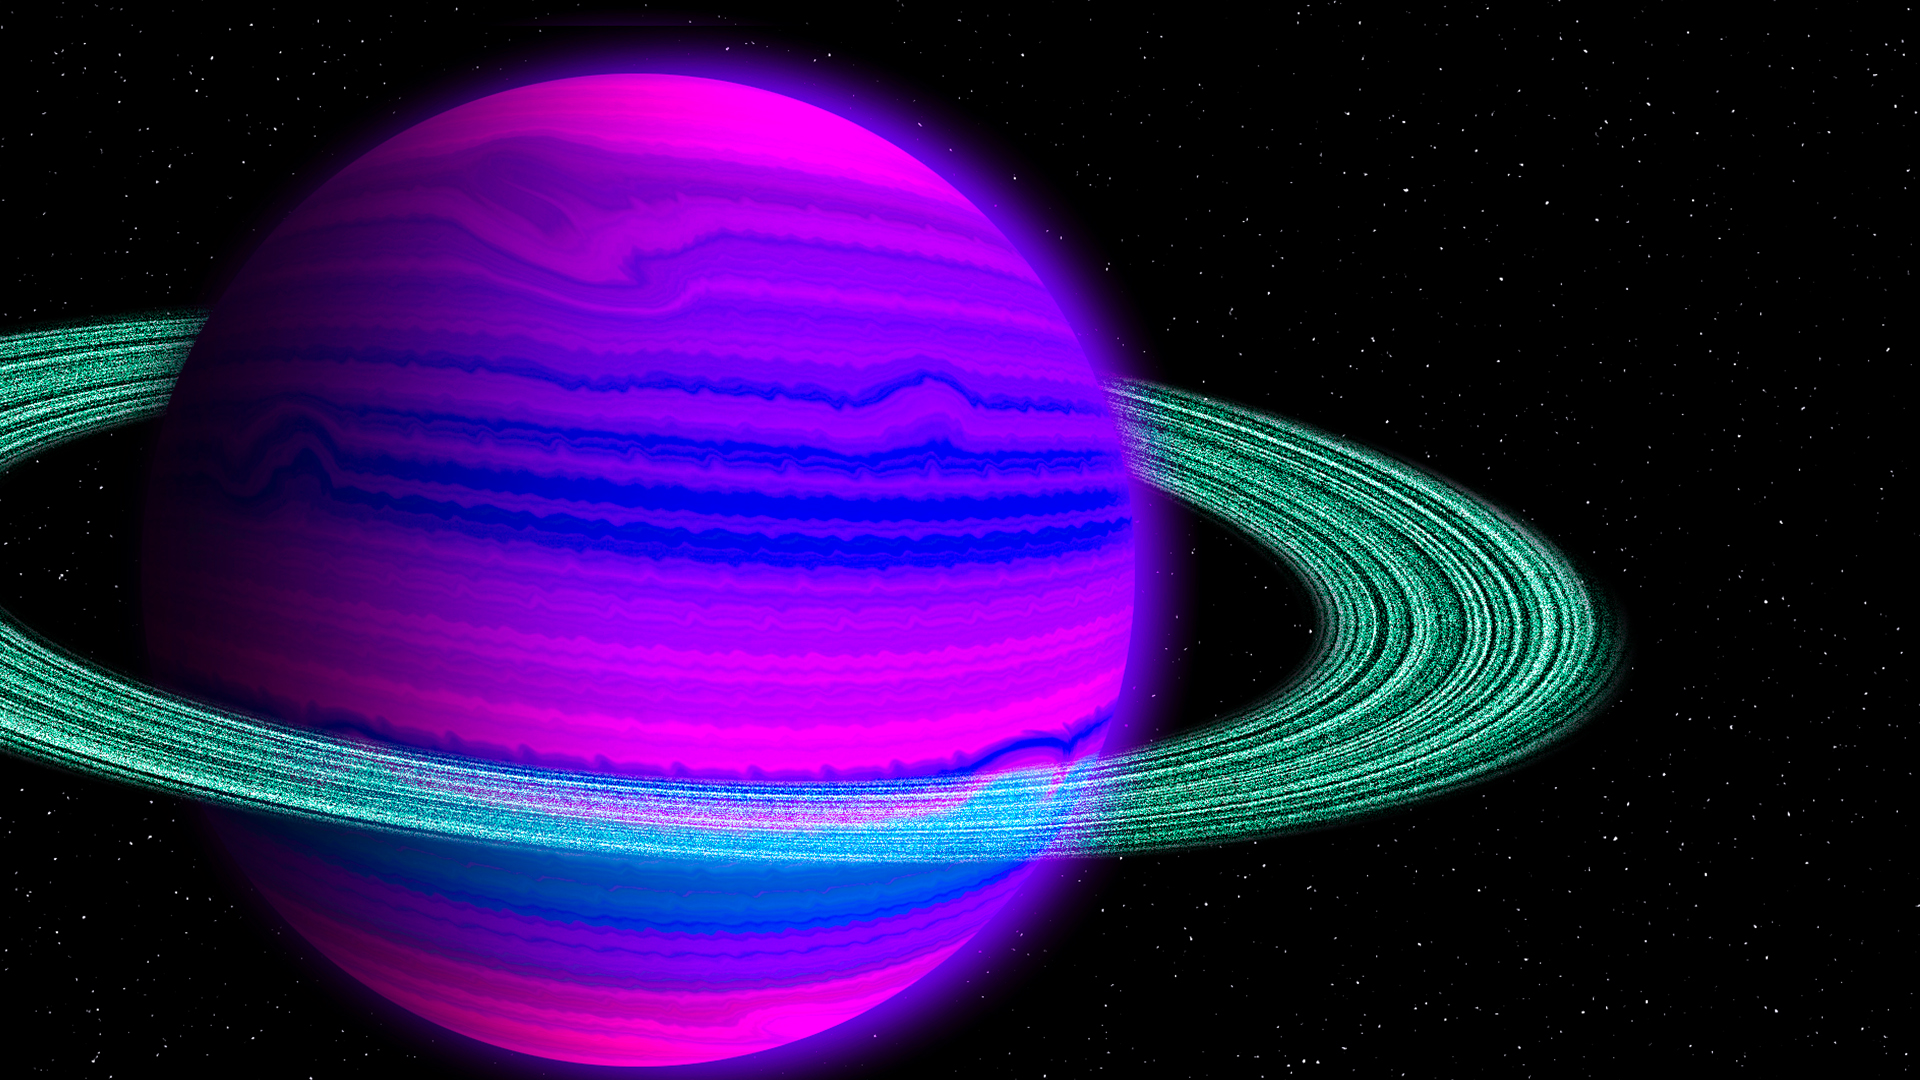 Blue and Pink Planet with Green Rings